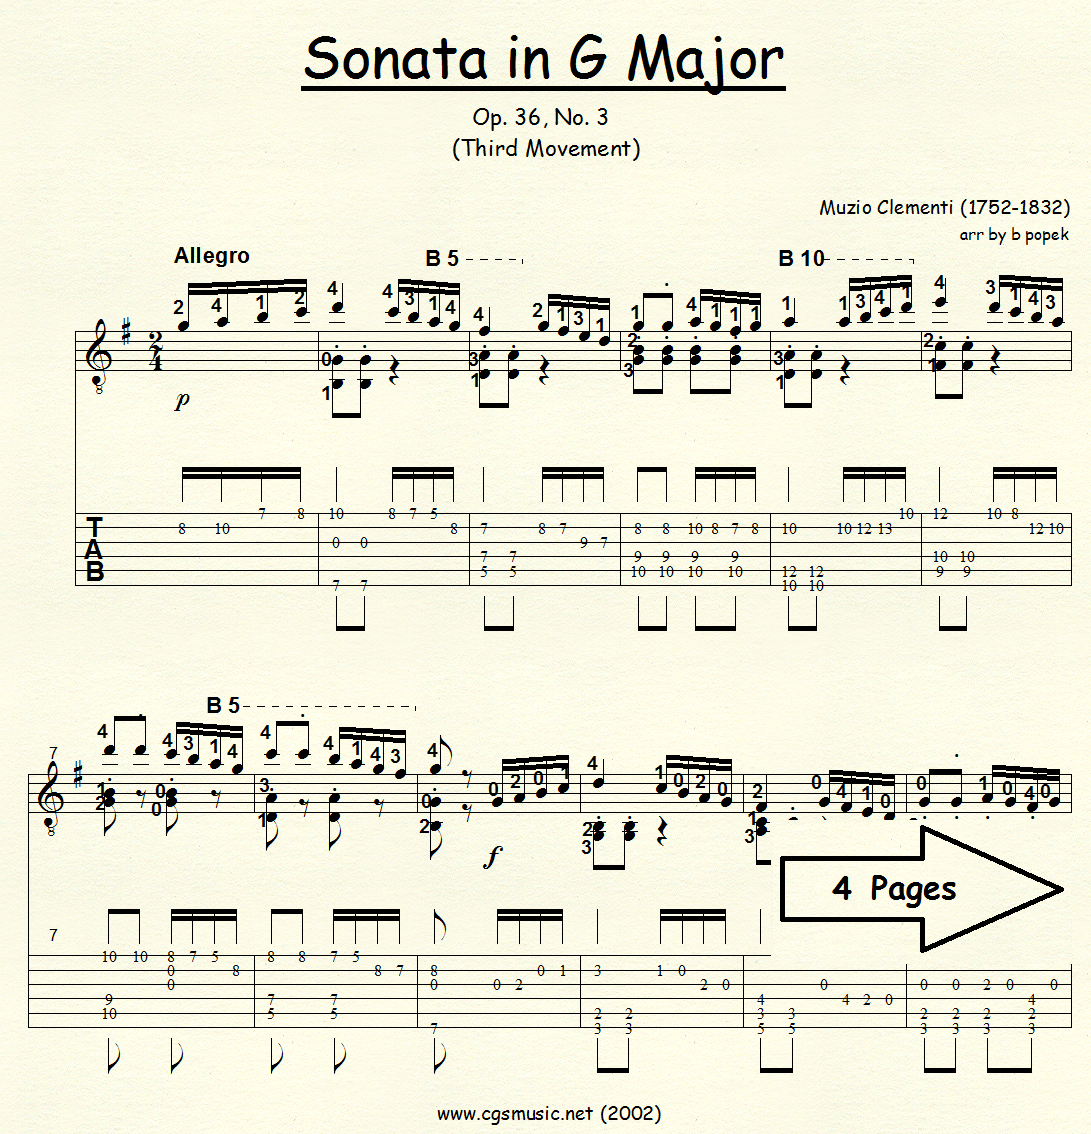 Sonata in G Major (Clementi) for Classical Guitar in Tablature